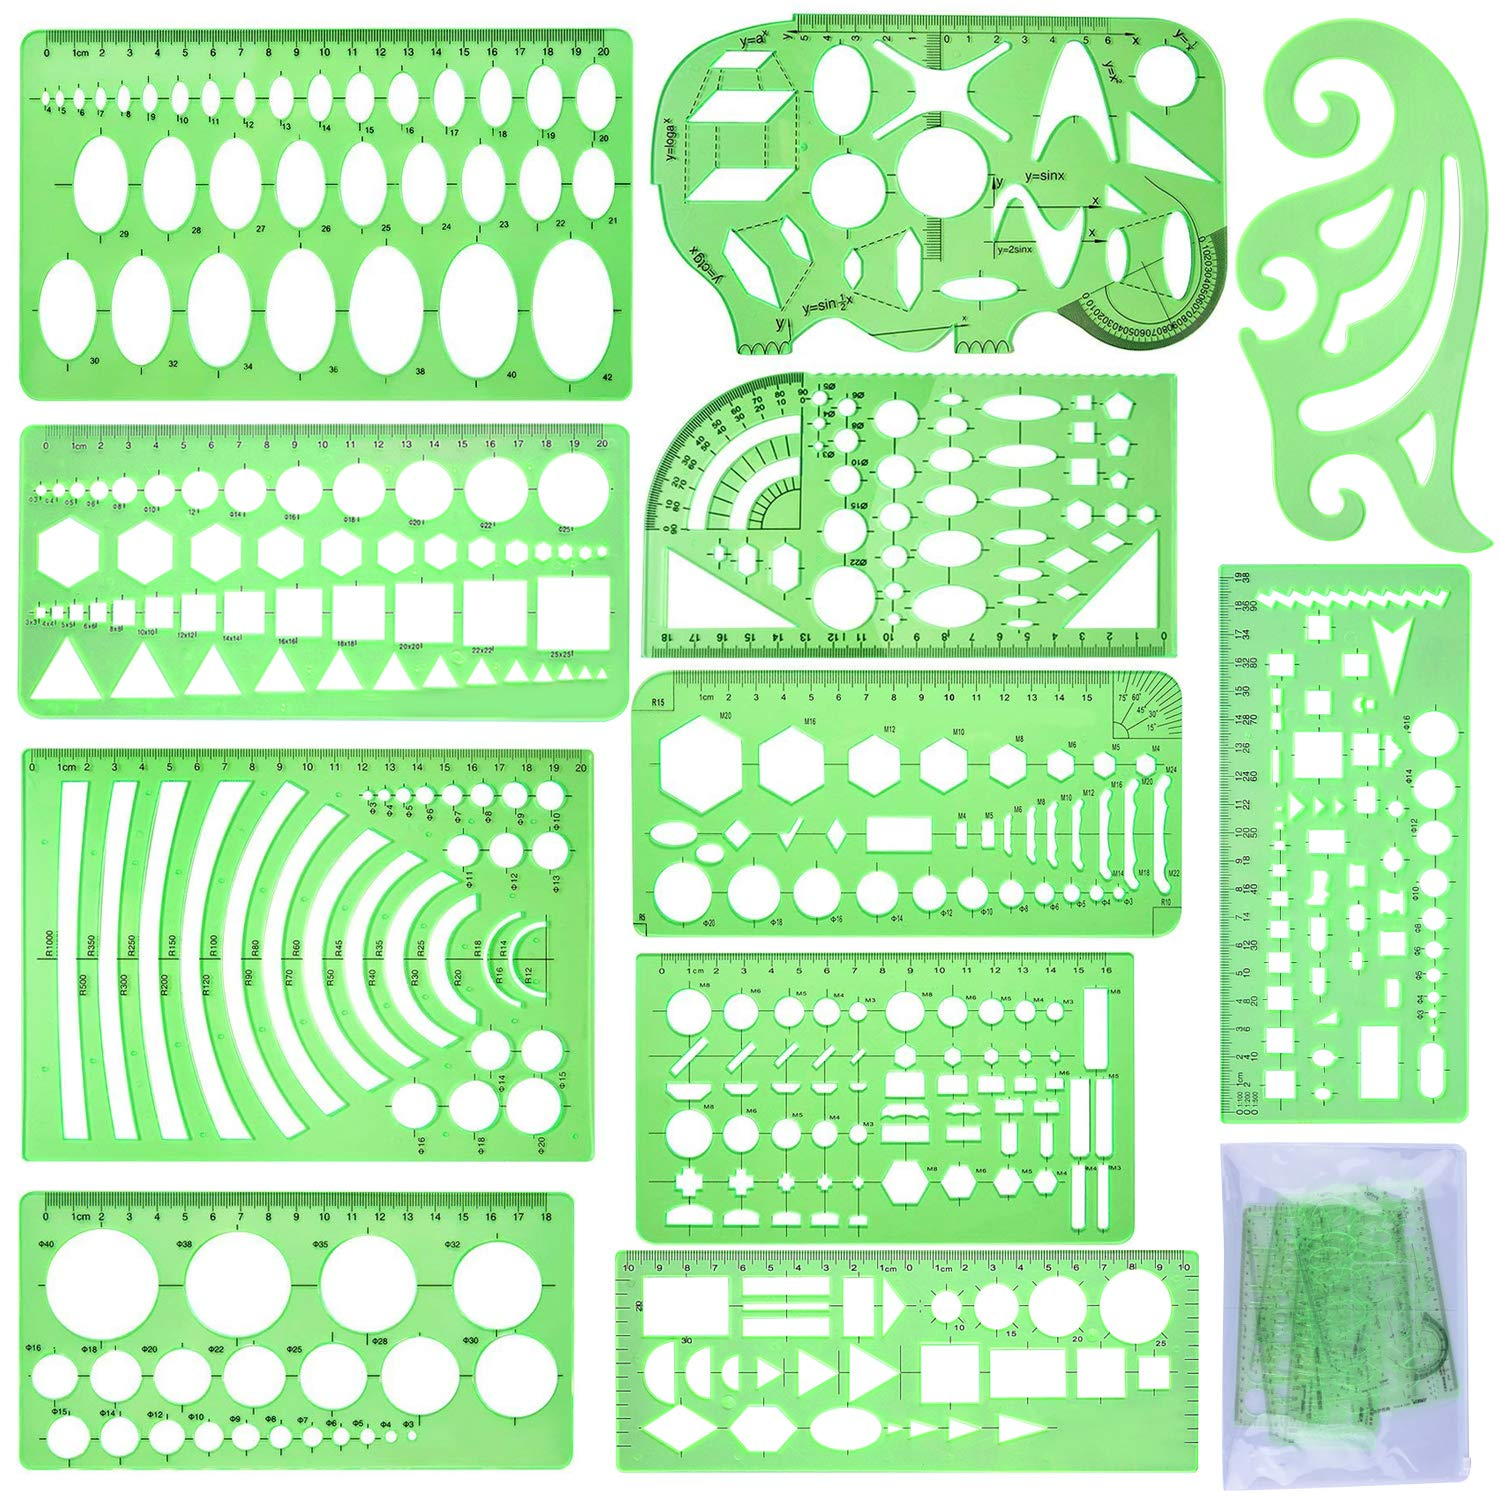 SIQUK 11 Pieces Geometric Drawings Templates Plastic Clear Green Plastic Rulers with 1 Pack Poly Zipper Envelopes for Studying, Designing and Building by SIQUK